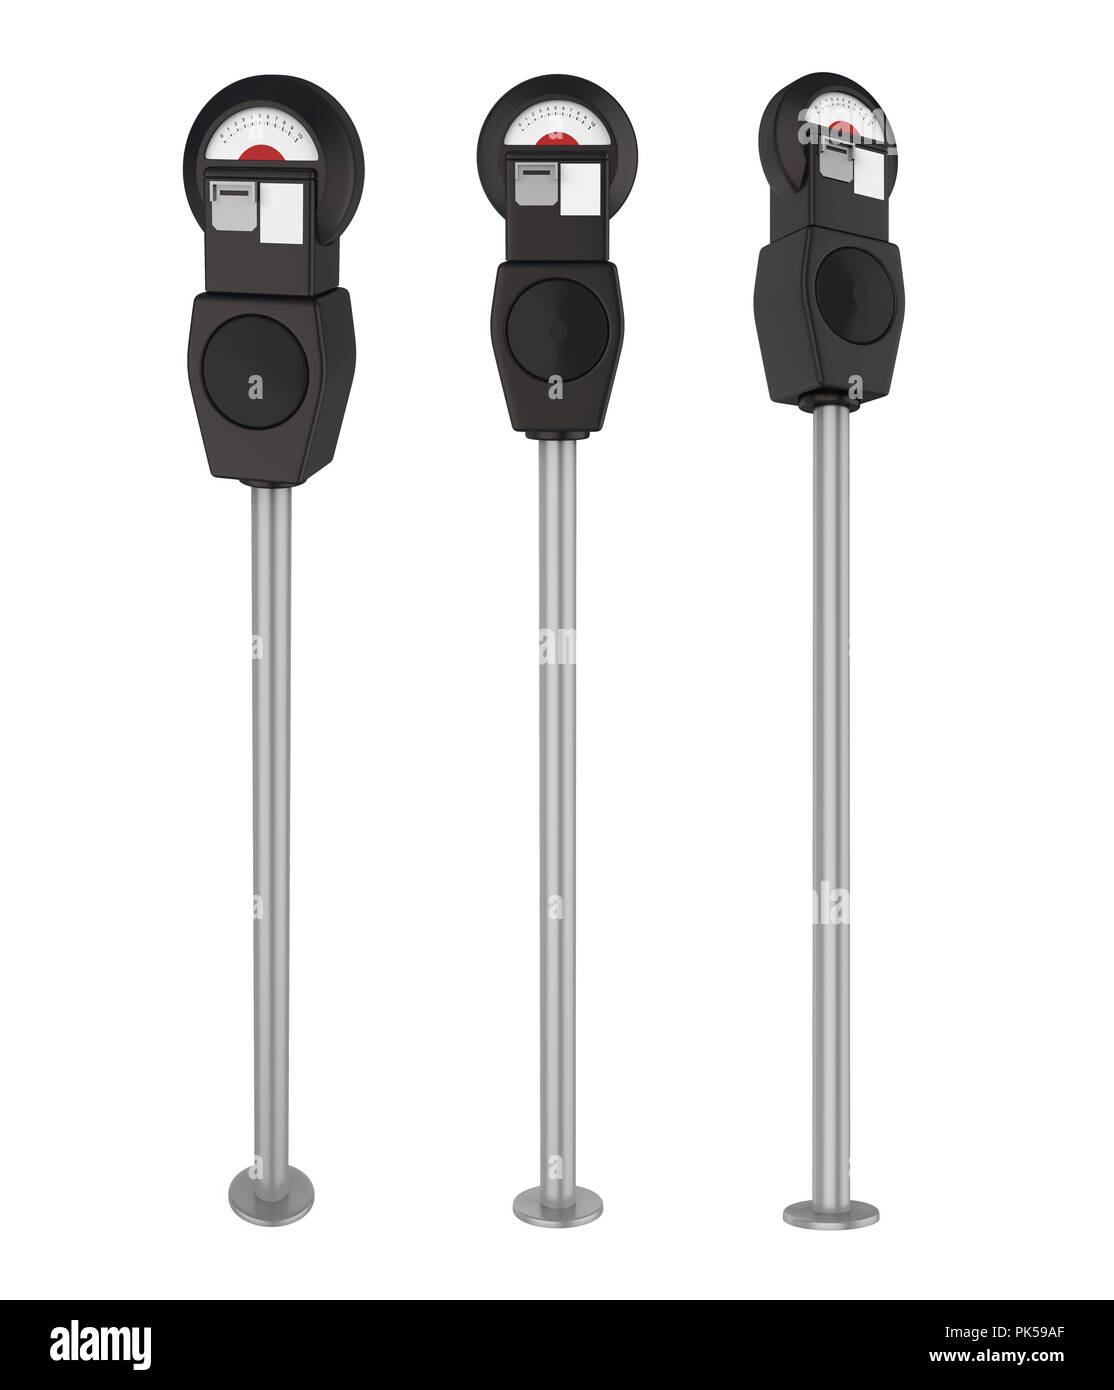 Parking Meter Isolated - Stock Image